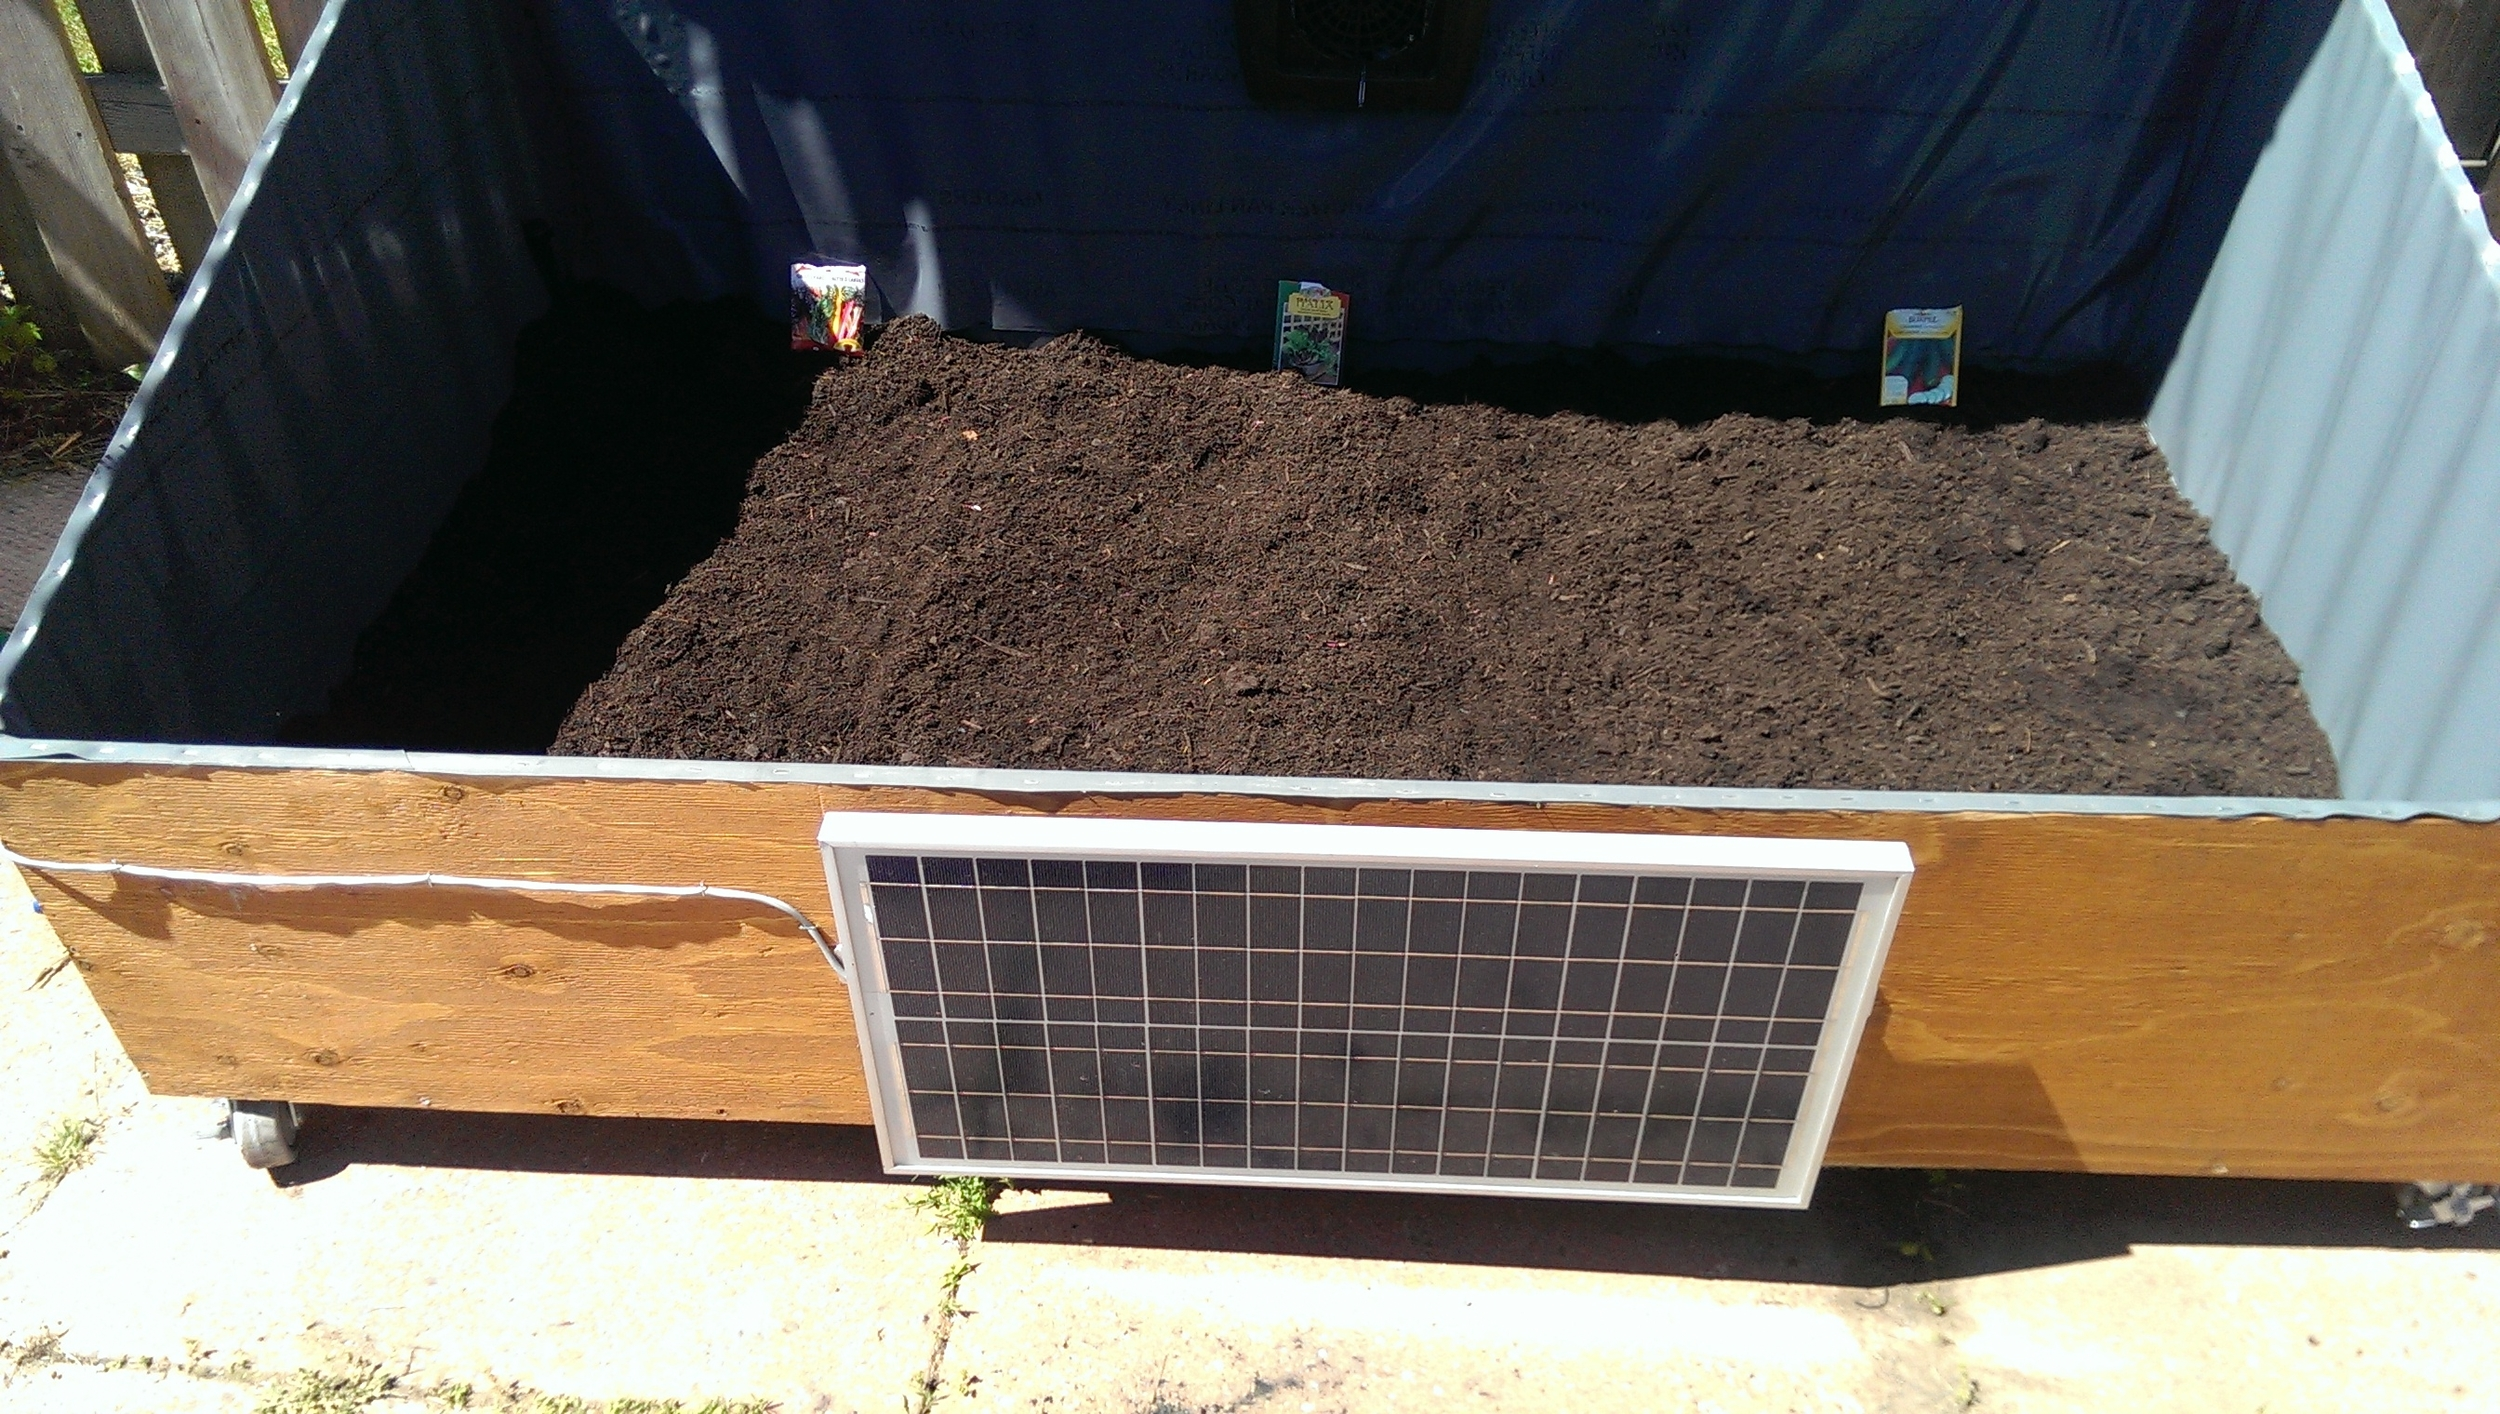 Planted with Scotts premium soil and three types of seeds. Cucumber, lettuce, swiss chard